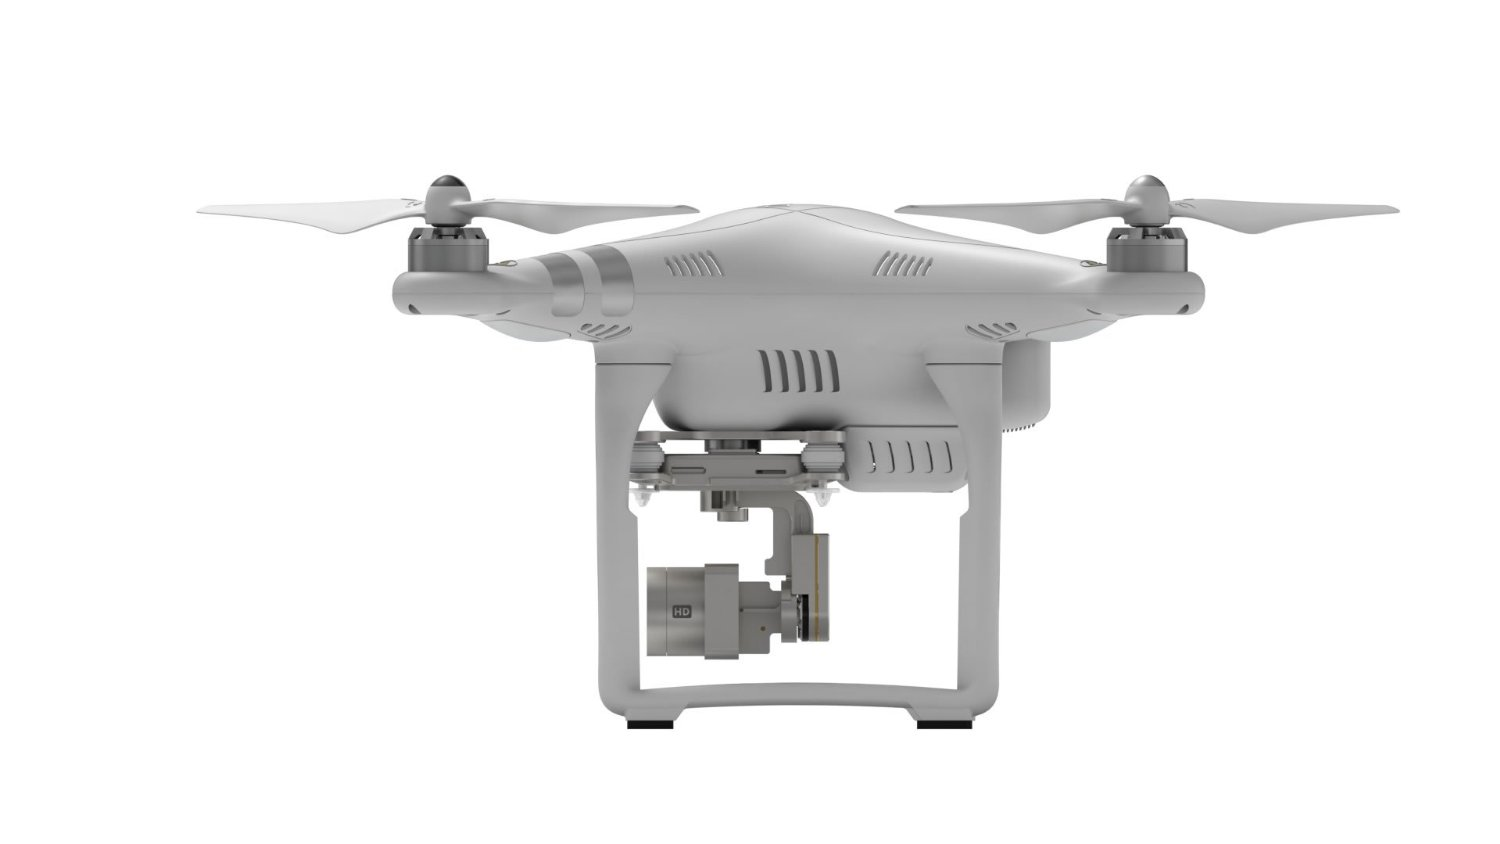 drone retailers with Dji Phantom 3 Review on Save Money Shopping Online Buy In The Us Ship To Australia With  gateway moreover Sar Drones Are Biggest Breakthrough In Mountain Rescue Since Search Dogs additionally Drones Popular Christmas Presents Despite Safety Concerns moreover Zhang Ziyi Designs For I Pinco Pallino Also Engaged as well Neon Glow Neo Tracks 258 Flexible Track System.